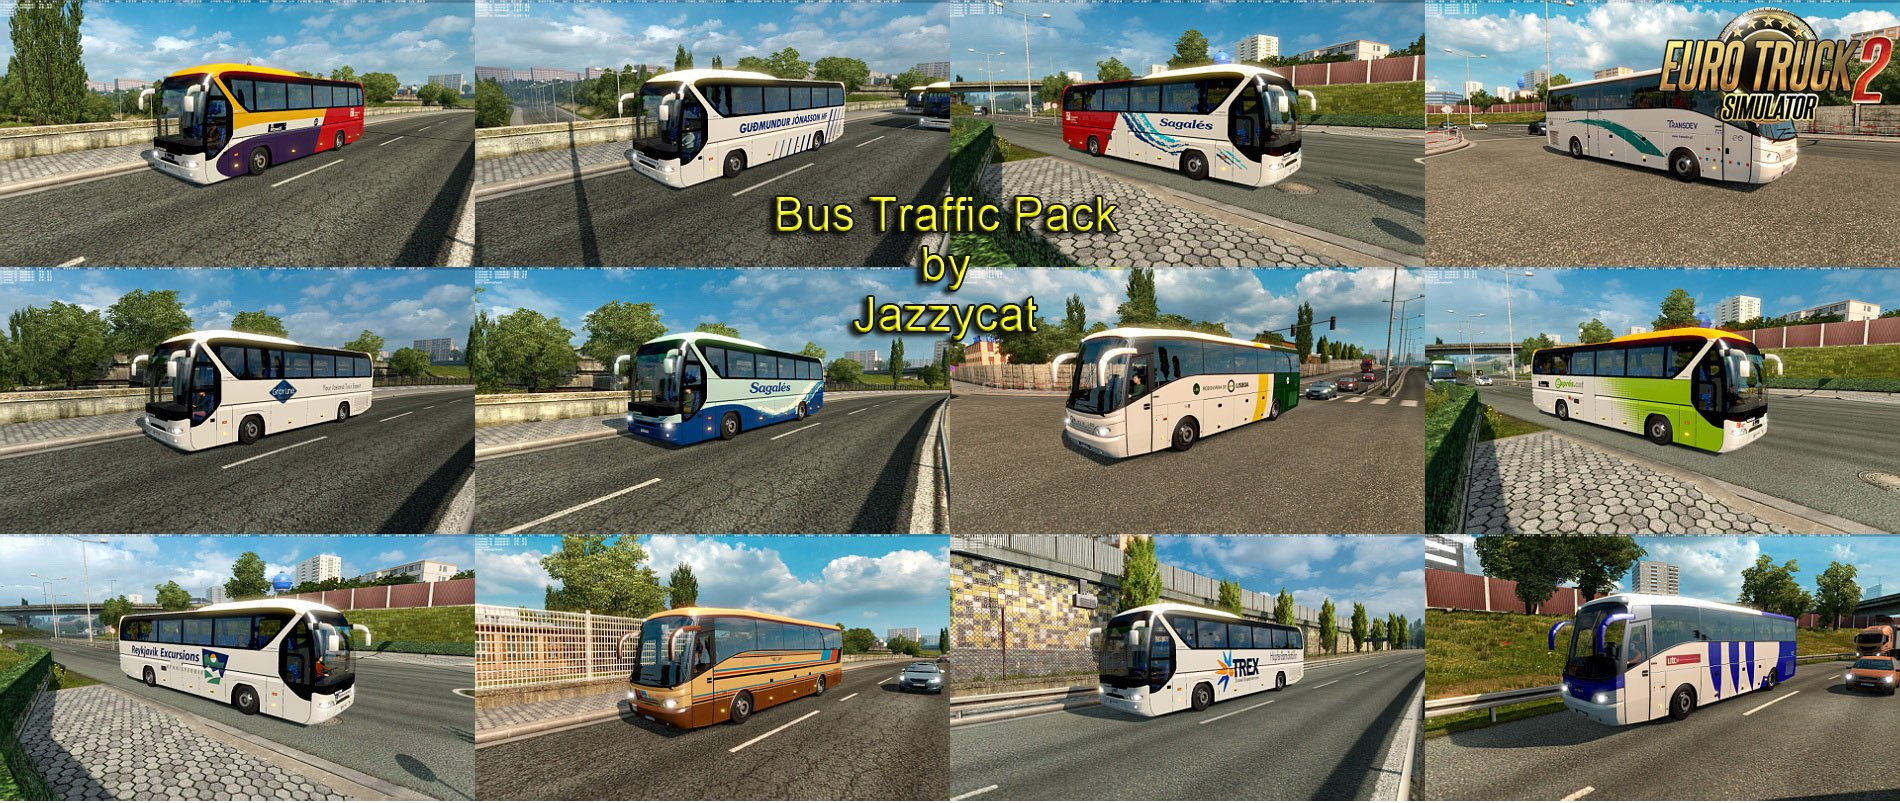 Bus Traffic Pack v1.9 by Jazzycat [1.27.x]